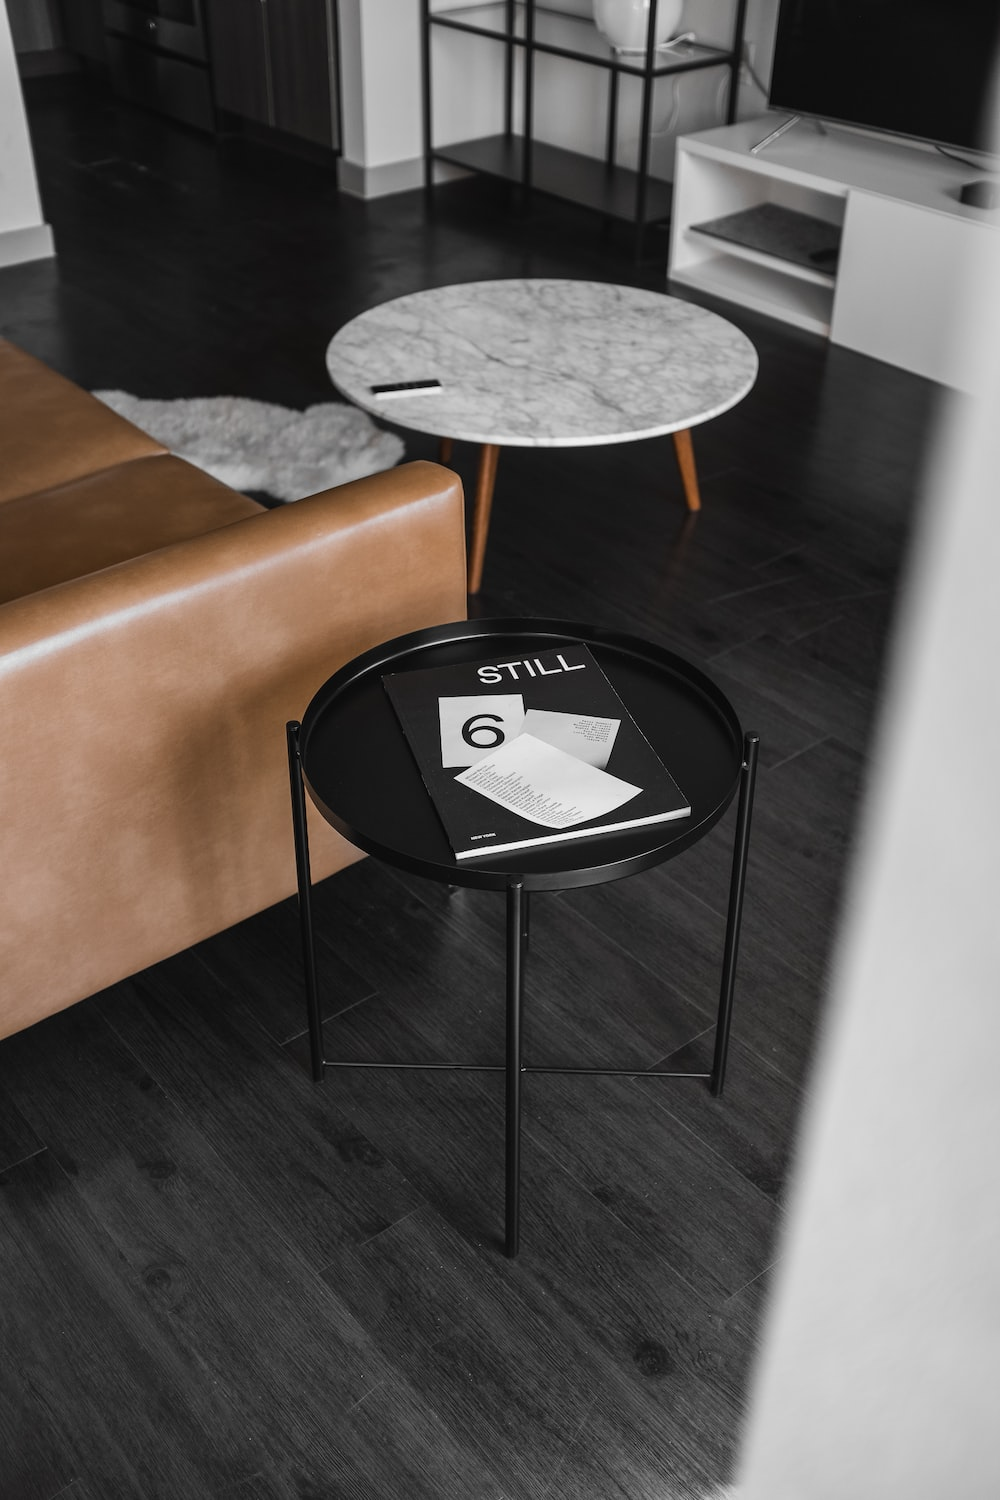 Outstanding Round White And Black Wooden Tables Beside Brown Leather Squirreltailoven Fun Painted Chair Ideas Images Squirreltailovenorg